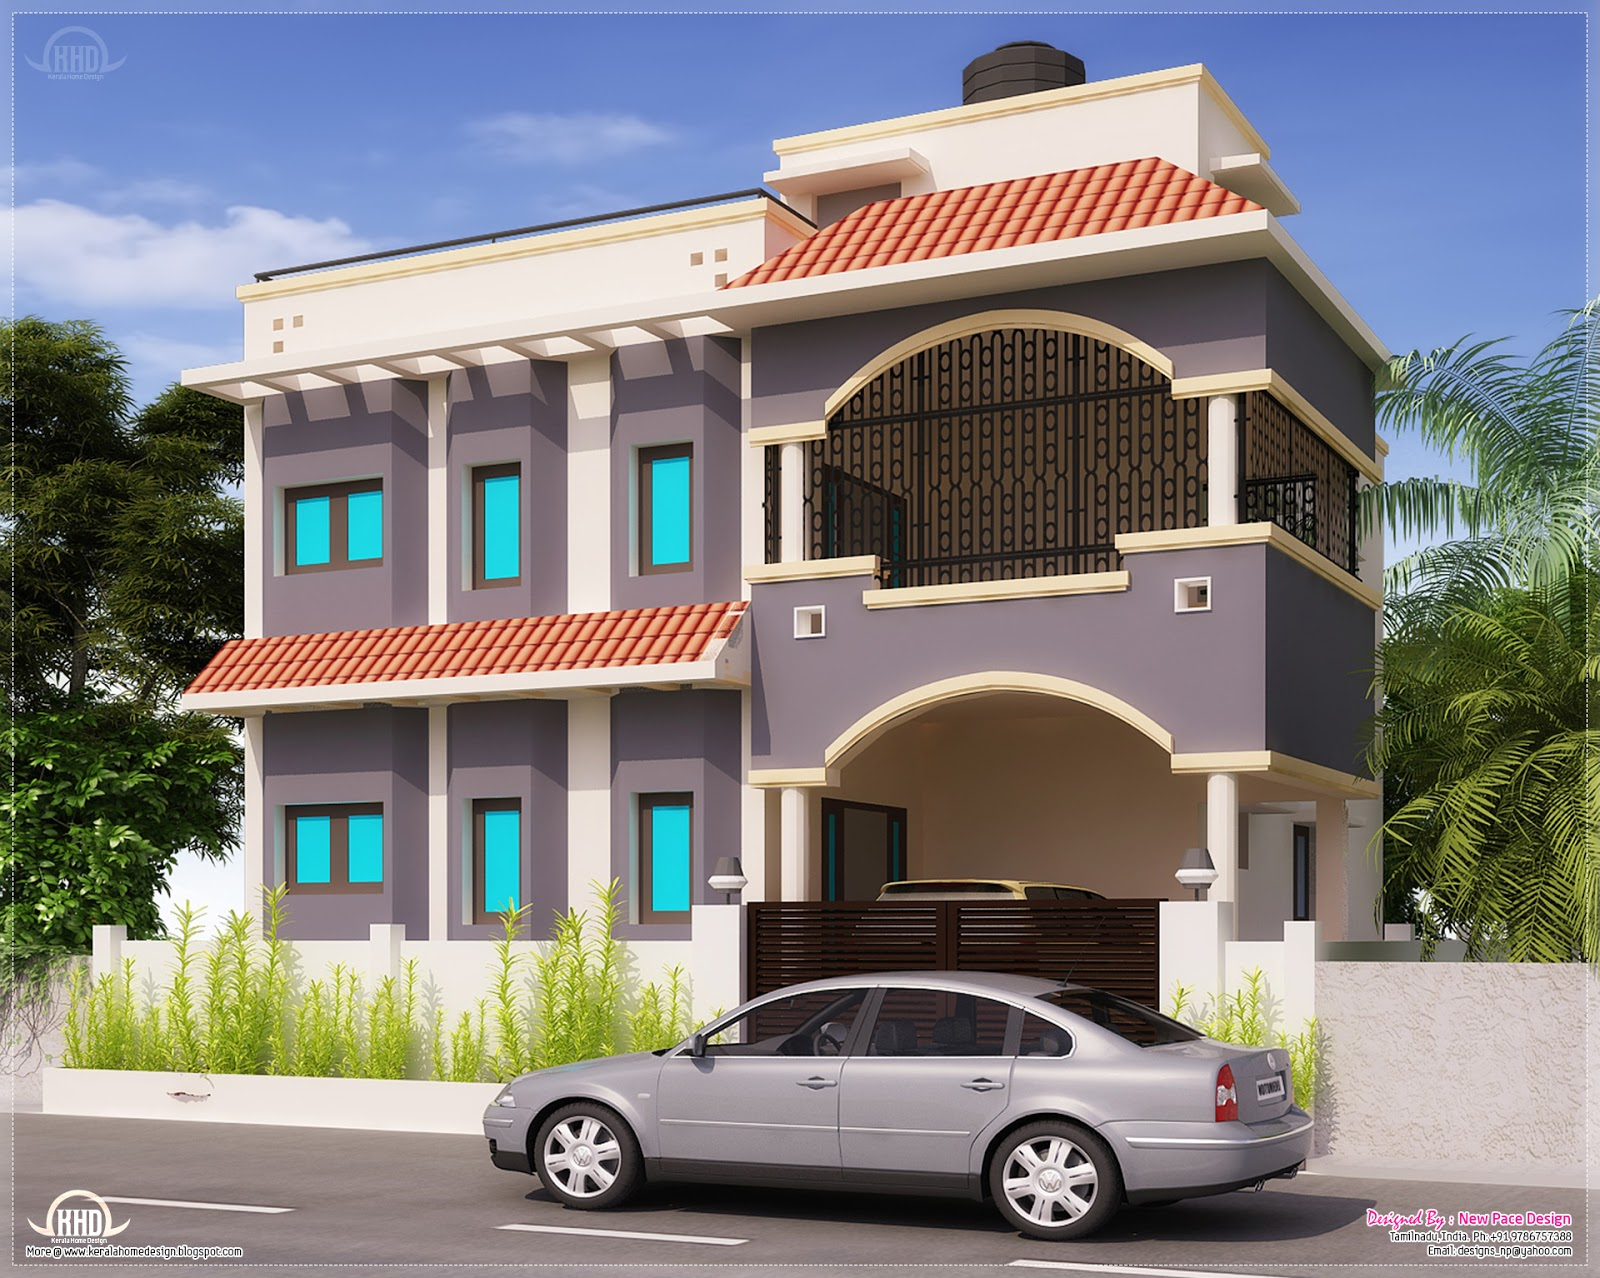 1675 Tamilnadu House Exterior Kerala Home Design And Floor Plans